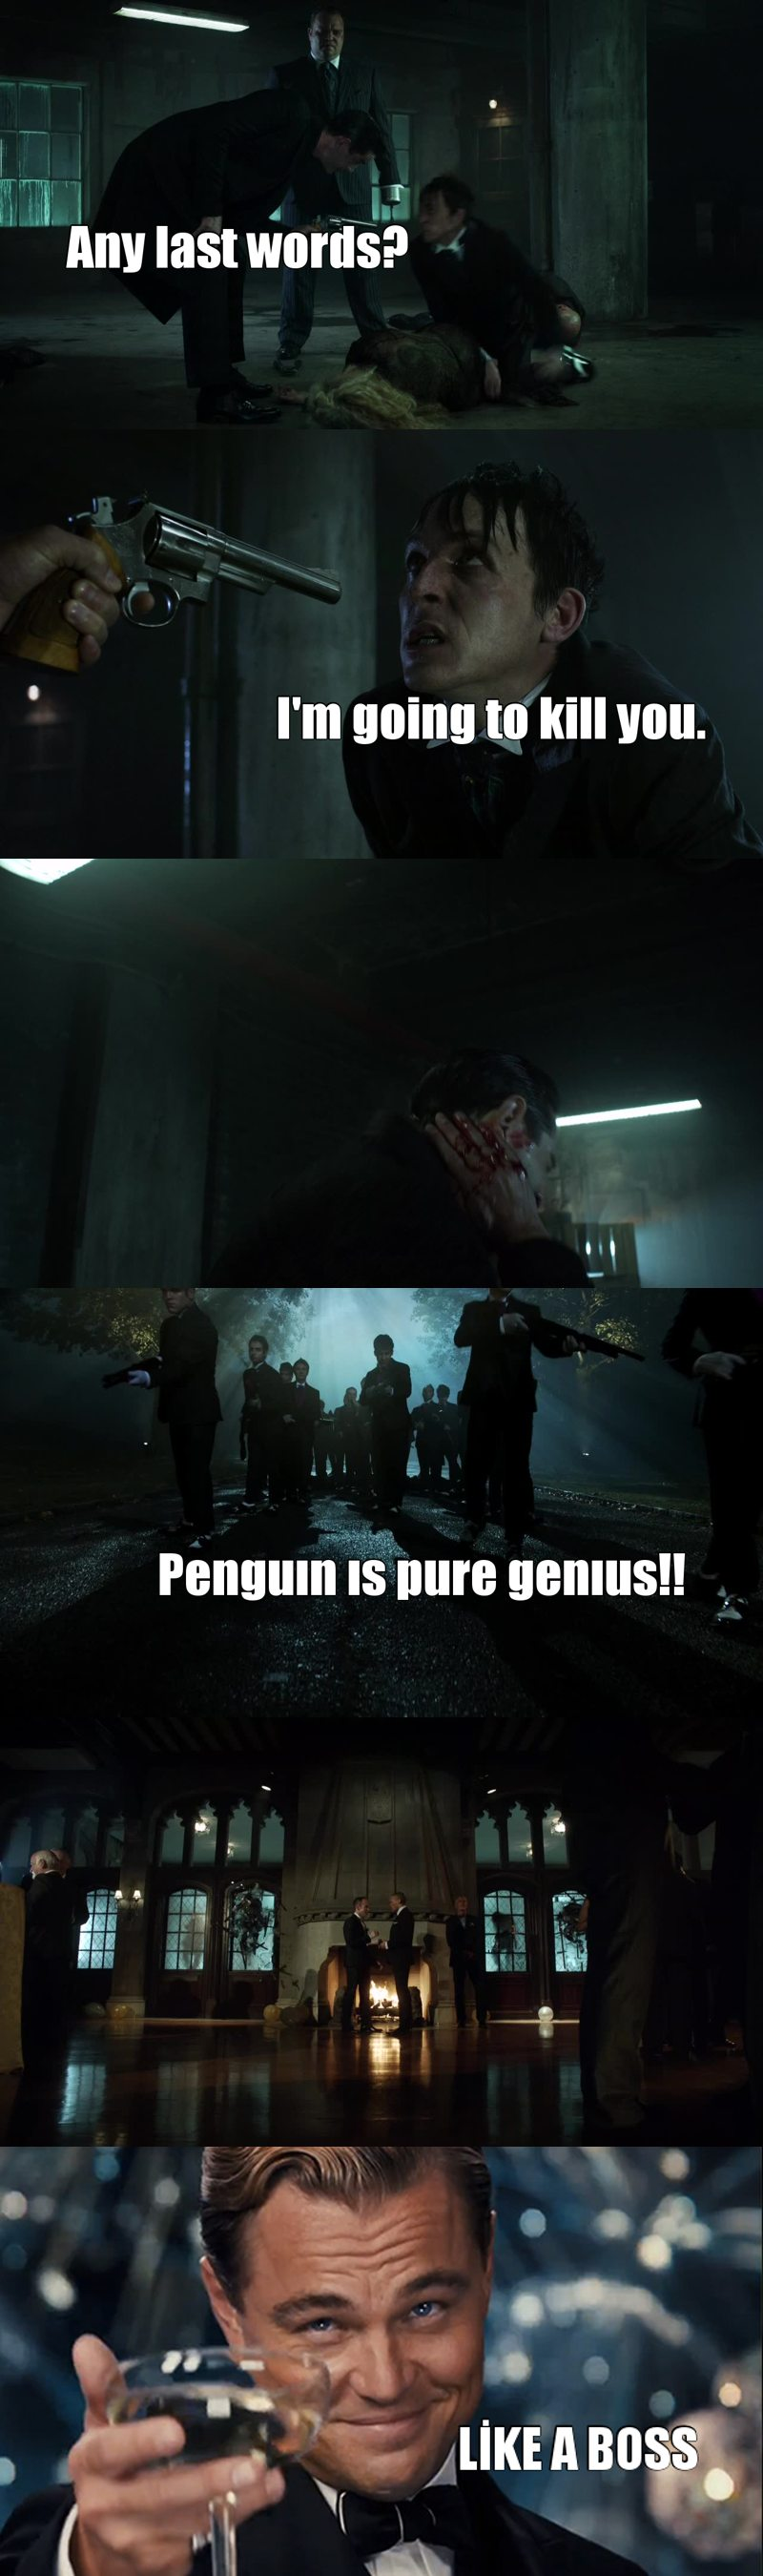 I'm completely in love with this show. And Penguin. 😍💃👀